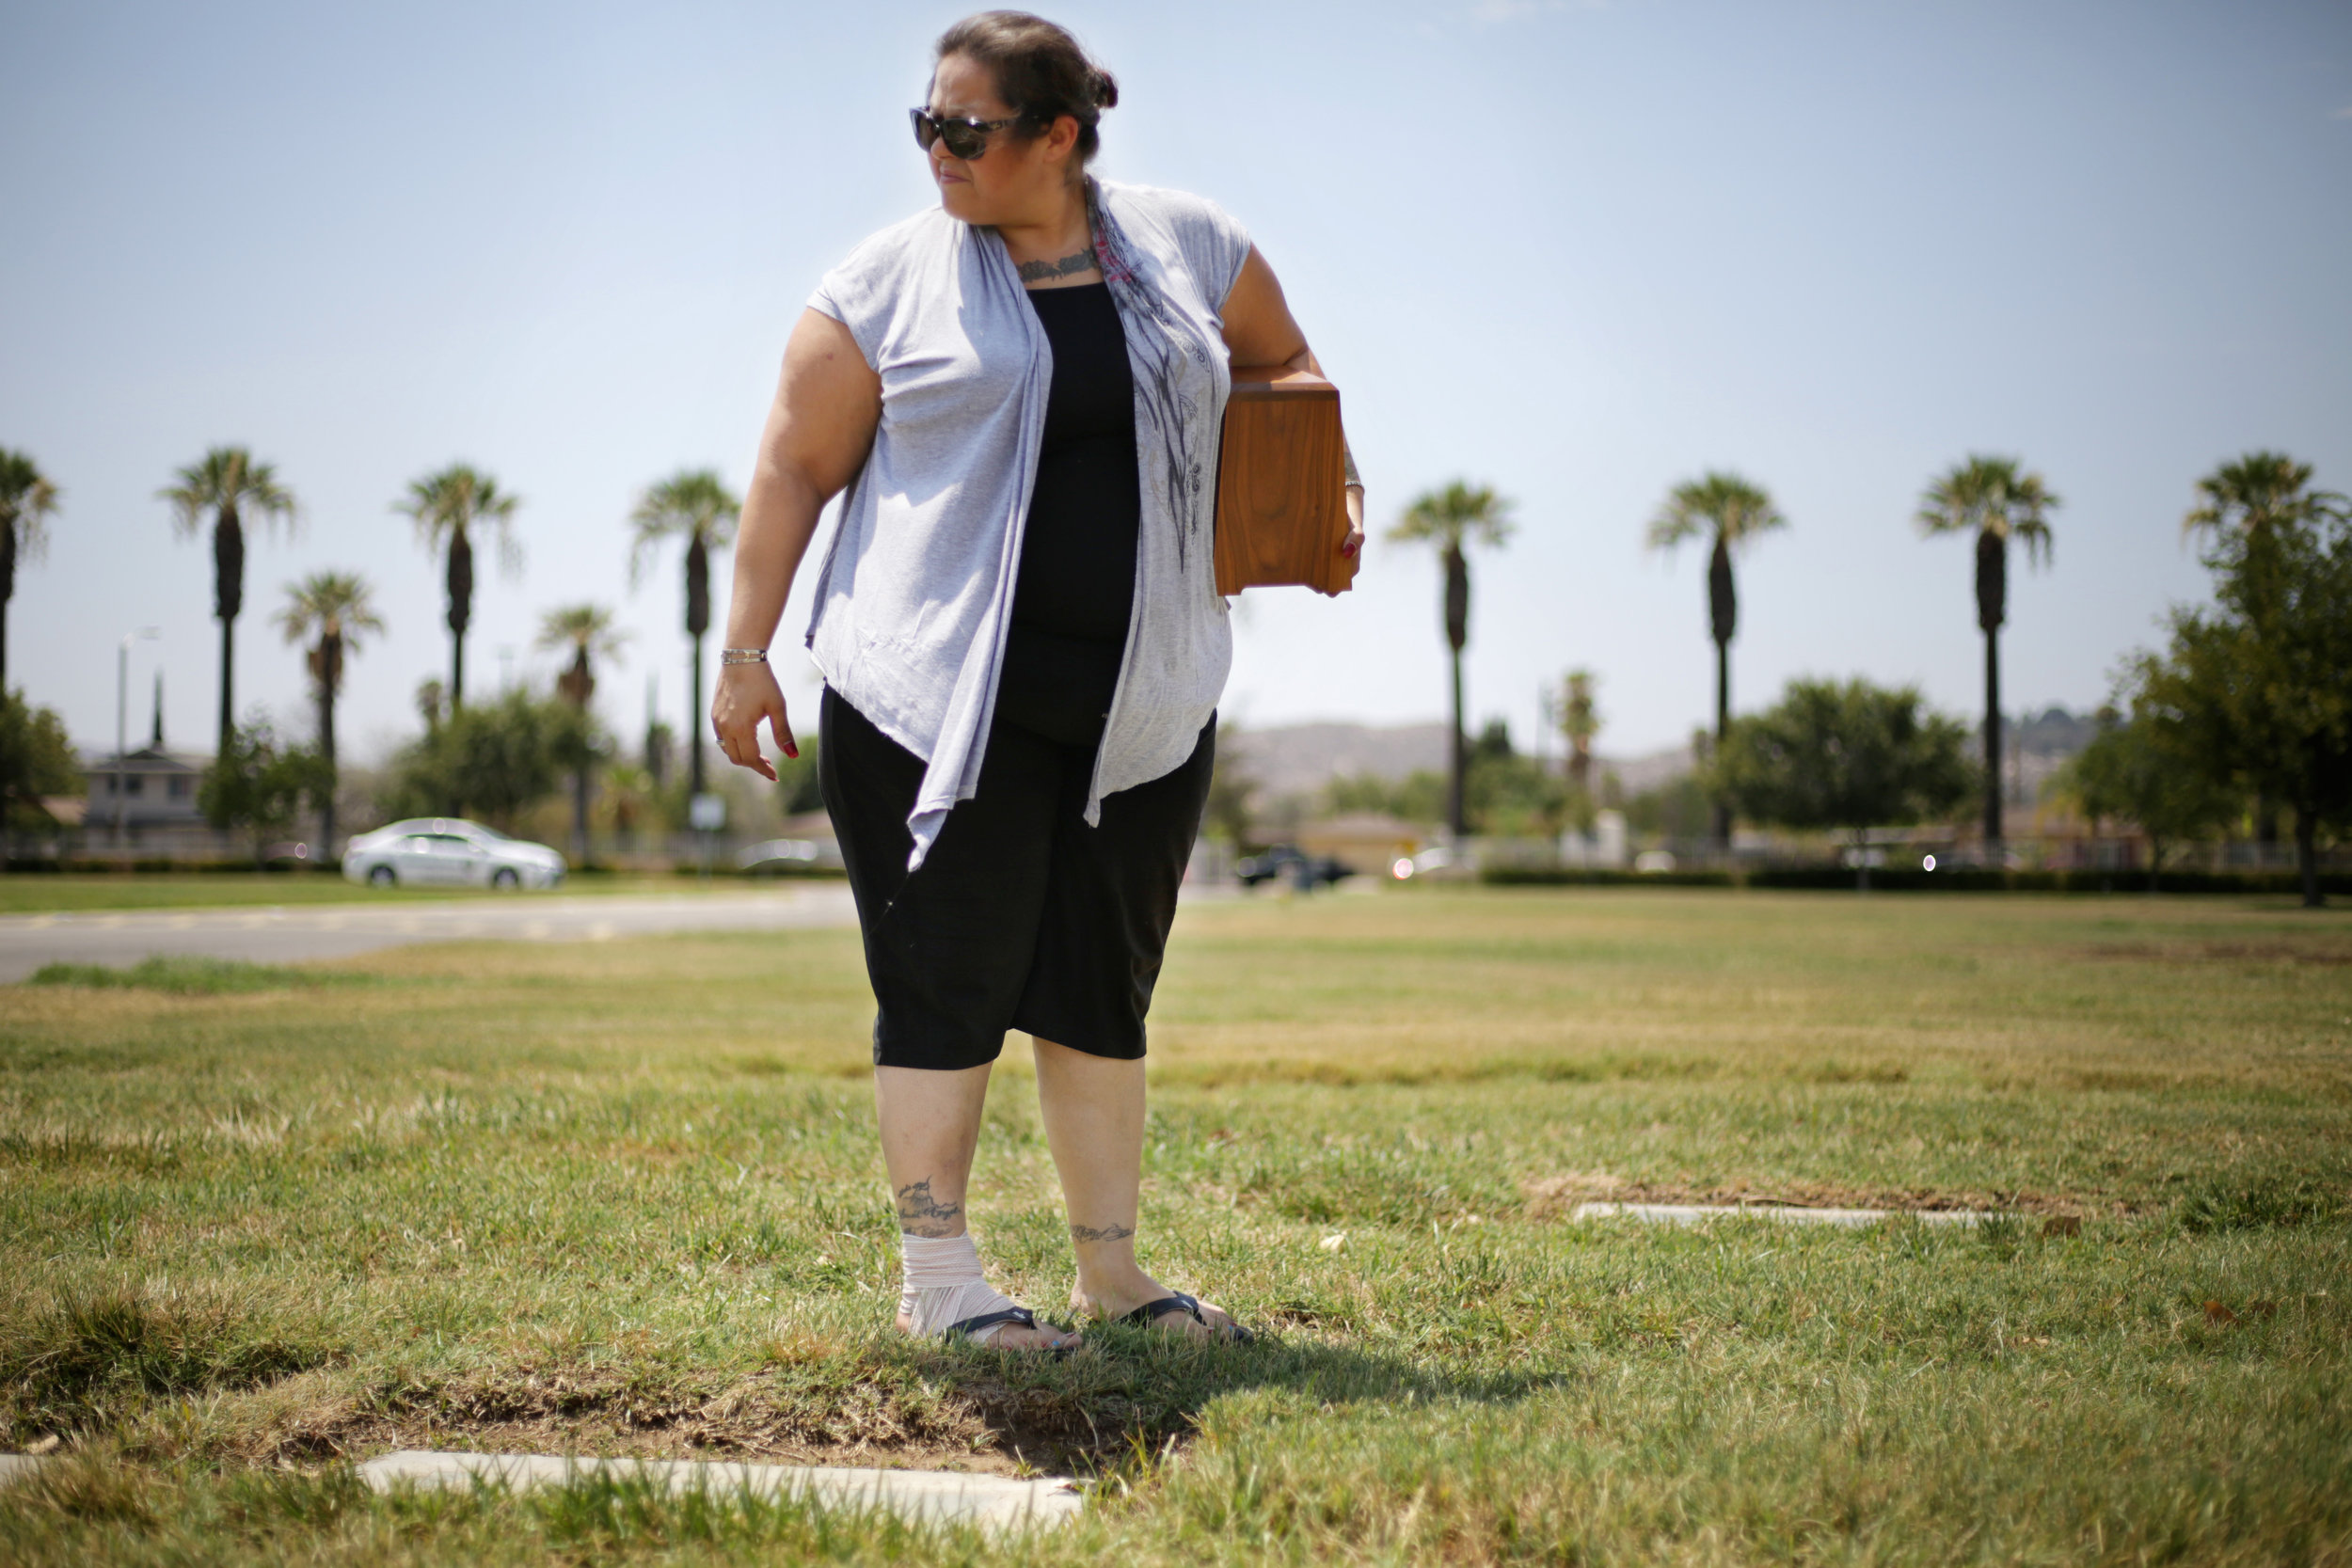 Antonia Rios, carries her mother's ashes through a cemetery to visit her fathers grave August, 2016. Rios's mother passed away a couple months ago and her father died when she was very young. Rios is a mother of seven children and she strives to reconnect with all her kids after they were in foster care for four years.